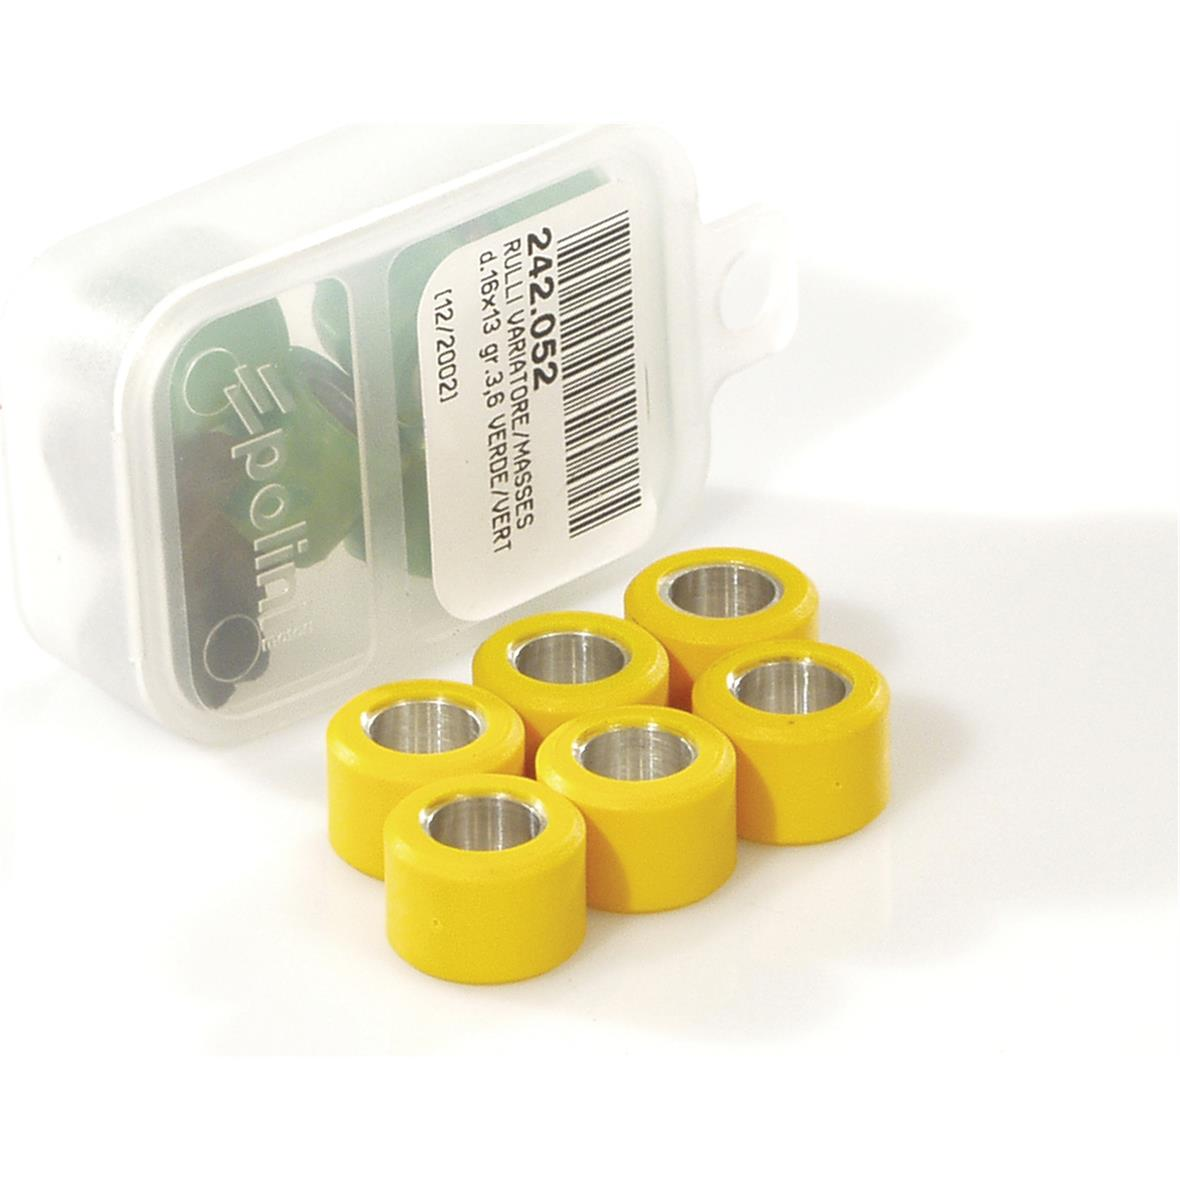 Product Image for 'Variator Rollers POLINI 15x12 mm 2,5gTitle'